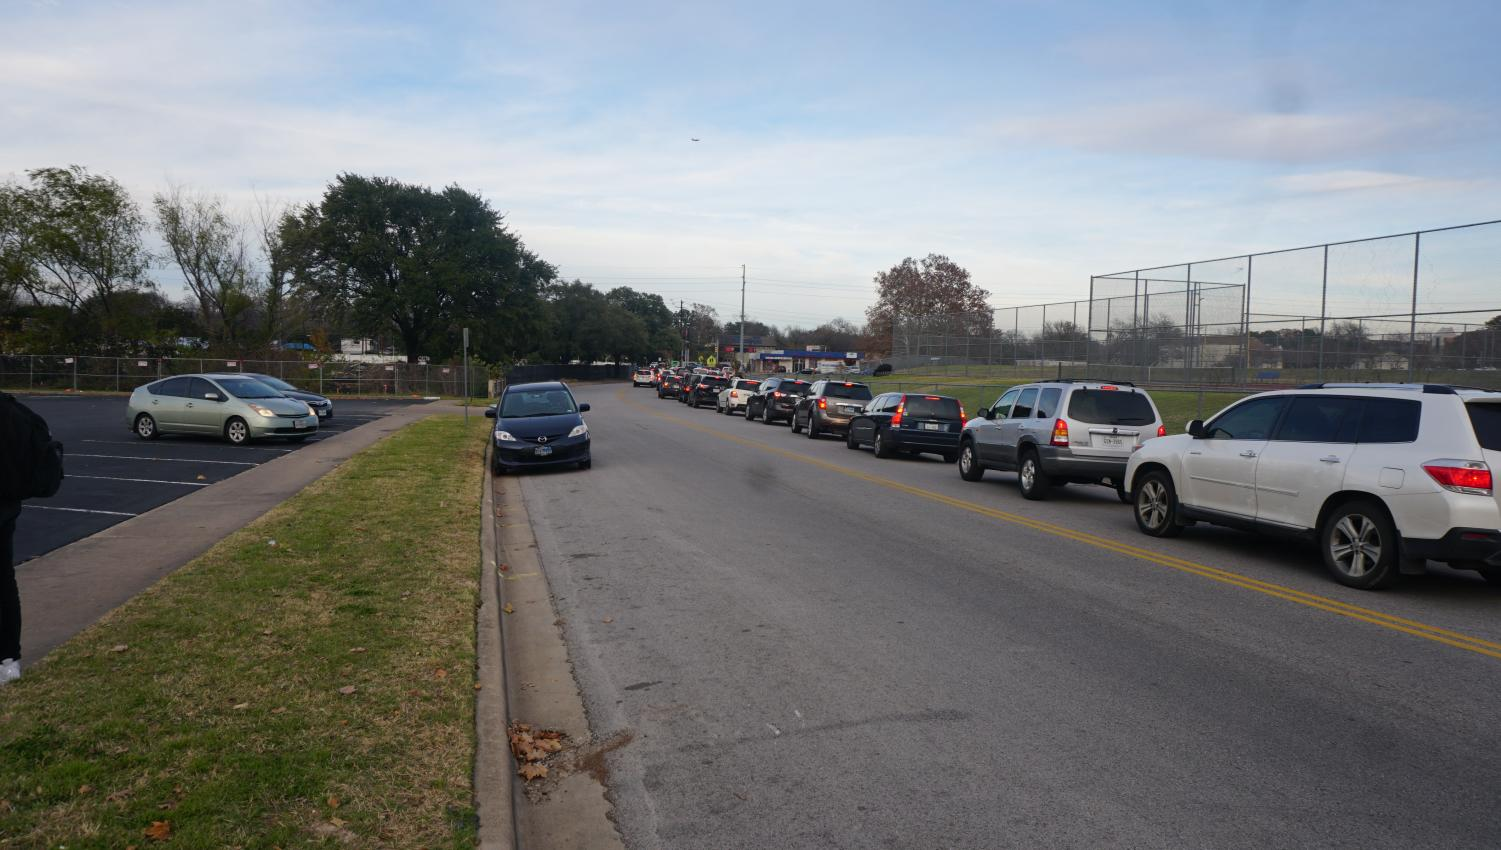 Traffic on Grover Avenue after the dismissal bell. Traffic on the street is already a problem, and some fear the new apartment complex will exacerbate the issue. Photo by Janssen Transier.